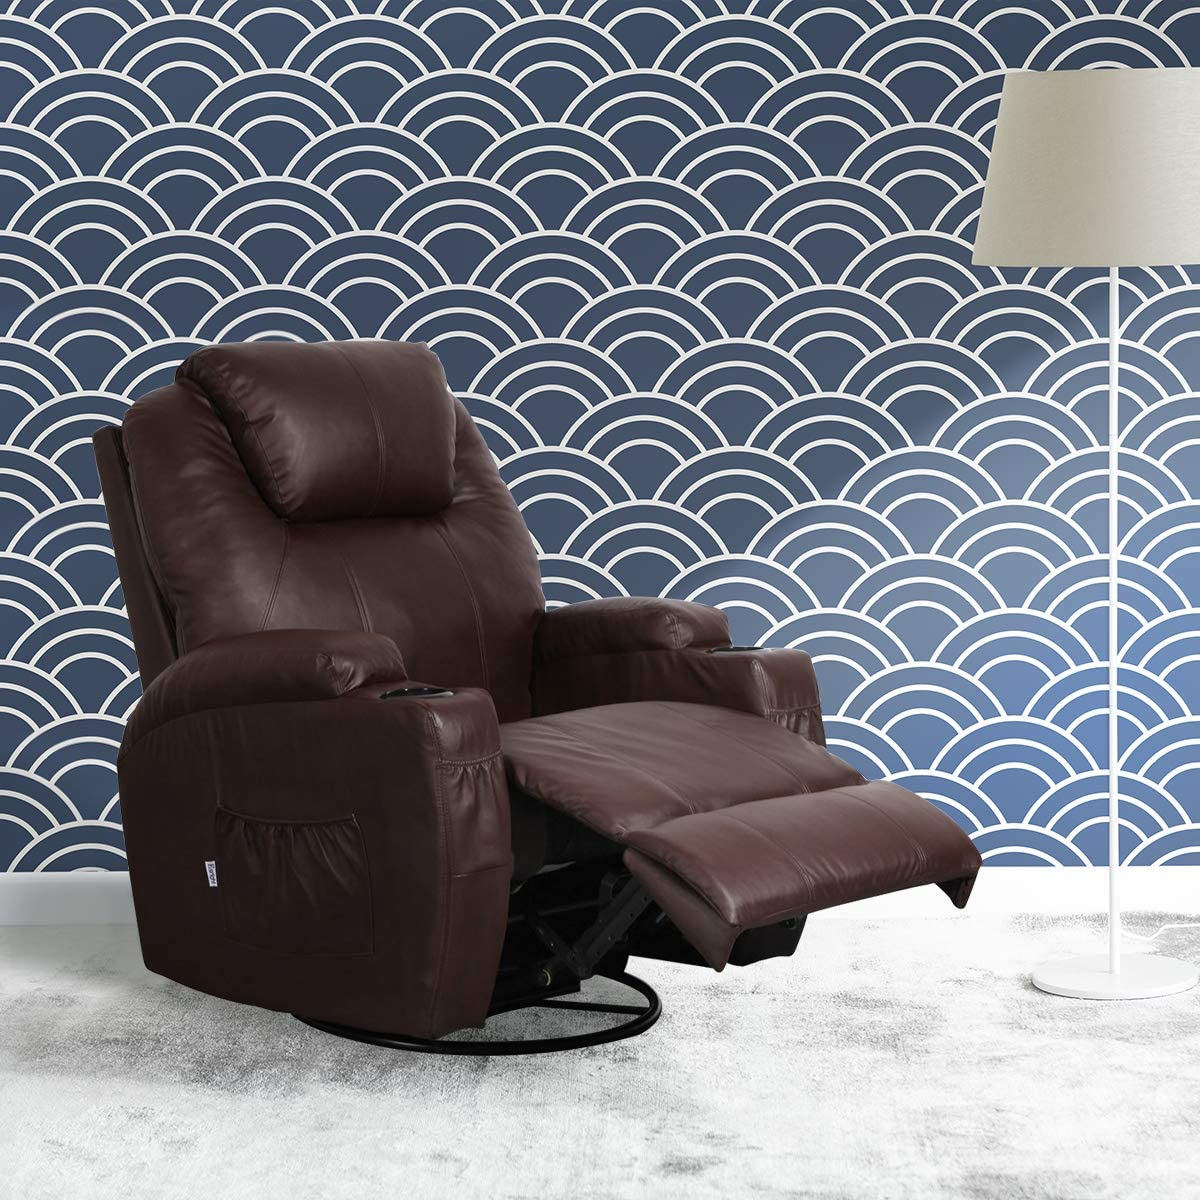 Aclumsy Massage Recliner Chair 360 Degree Swivel Heated PU Leather Ergonomic Lounge with Remote Control,Brown